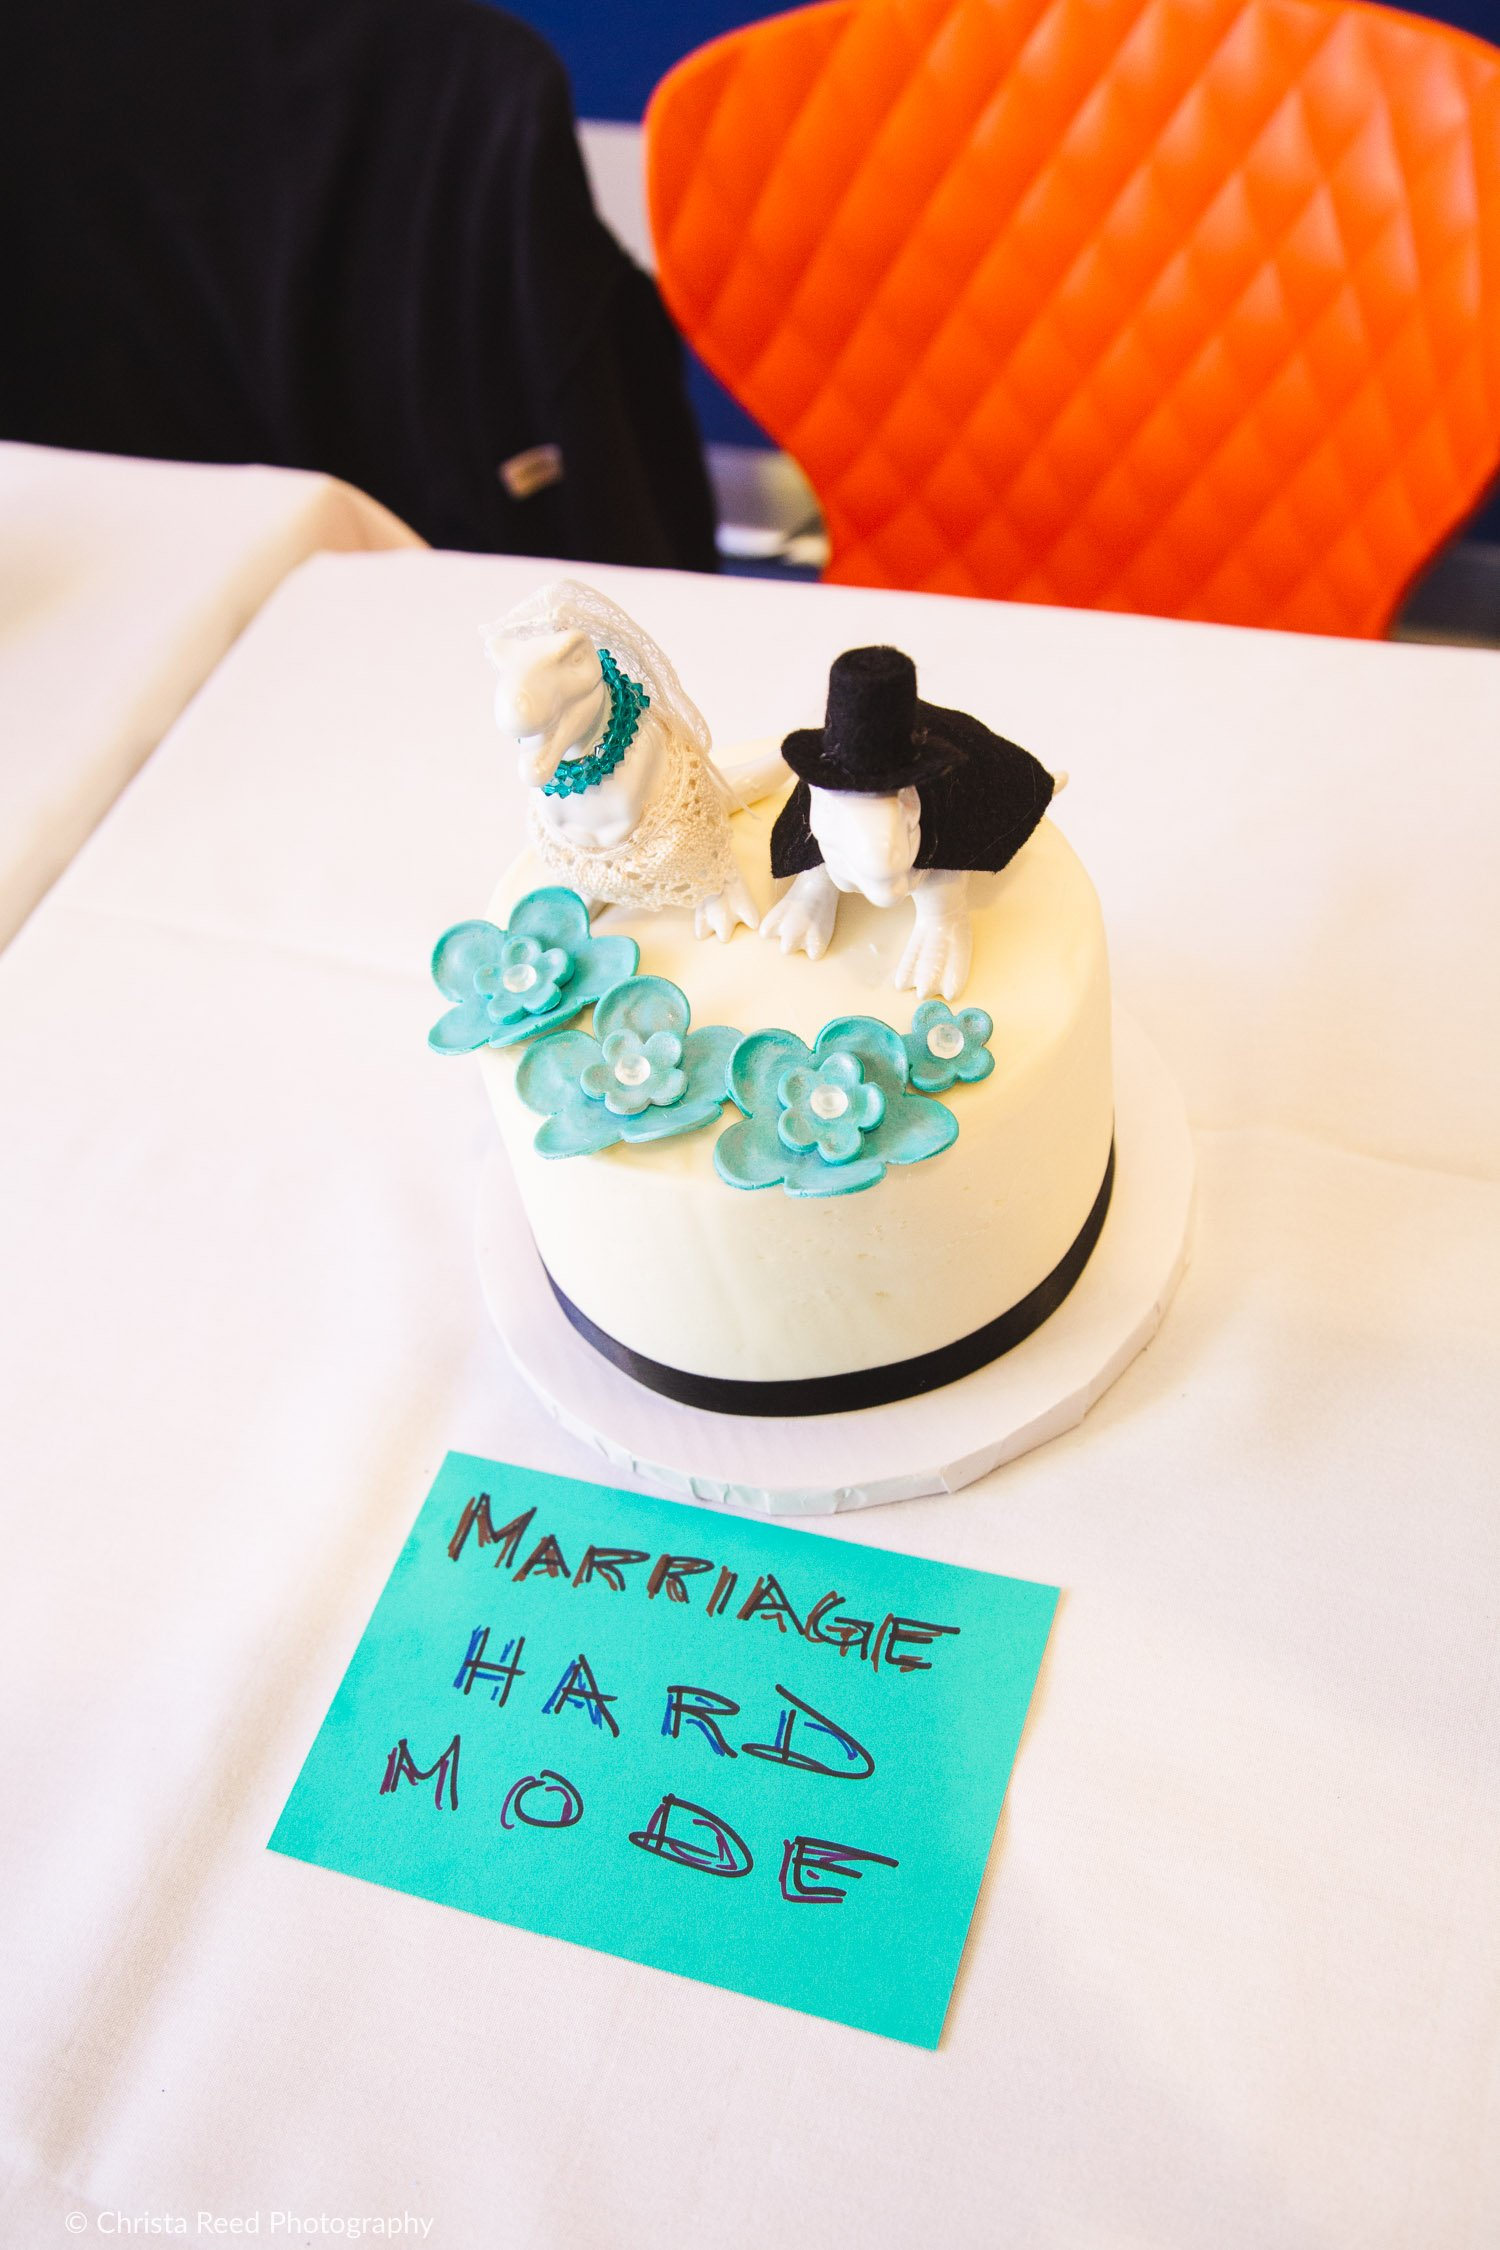 A gamer wedding cake with dinosaurs